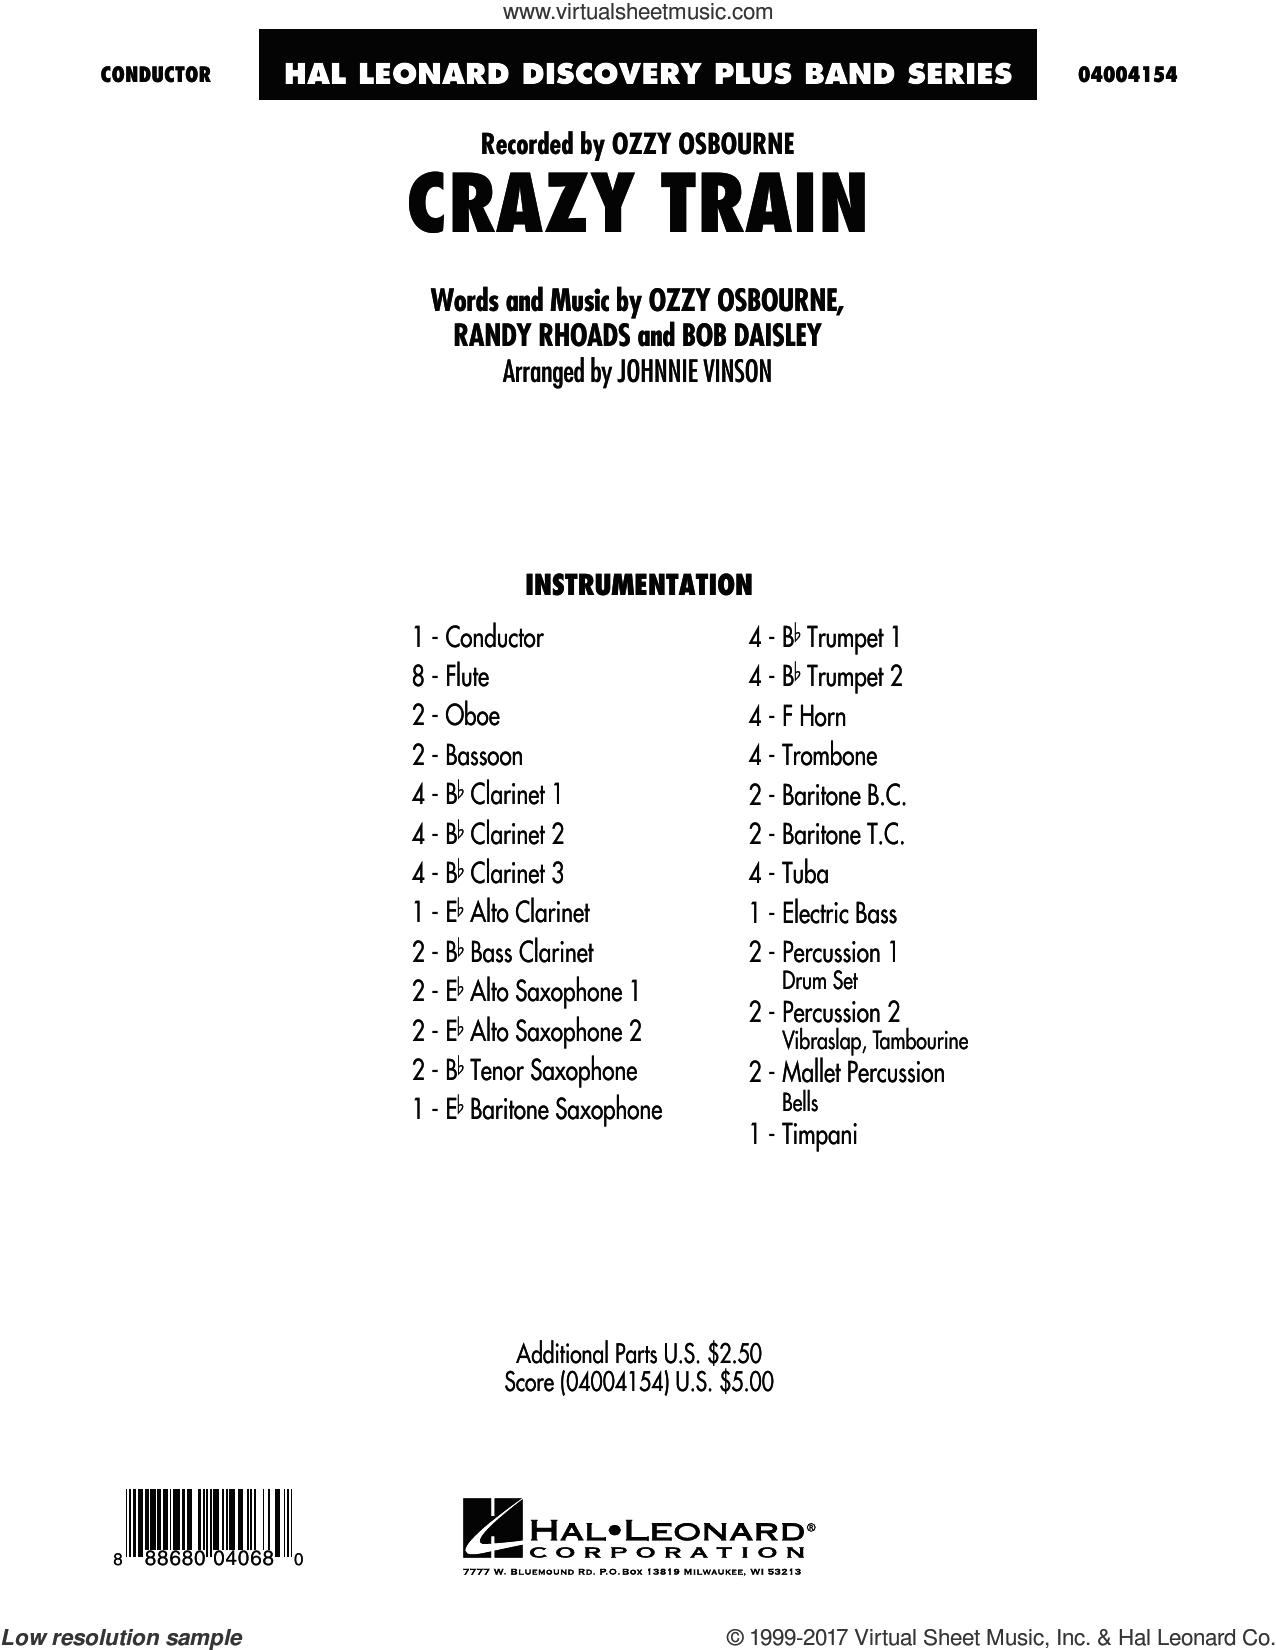 Crazy Train (COMPLETE) sheet music for concert band by Ozzy Osbourne, Bob Daisley, Johnnie Vinson and Randy Rhoads, intermediate skill level